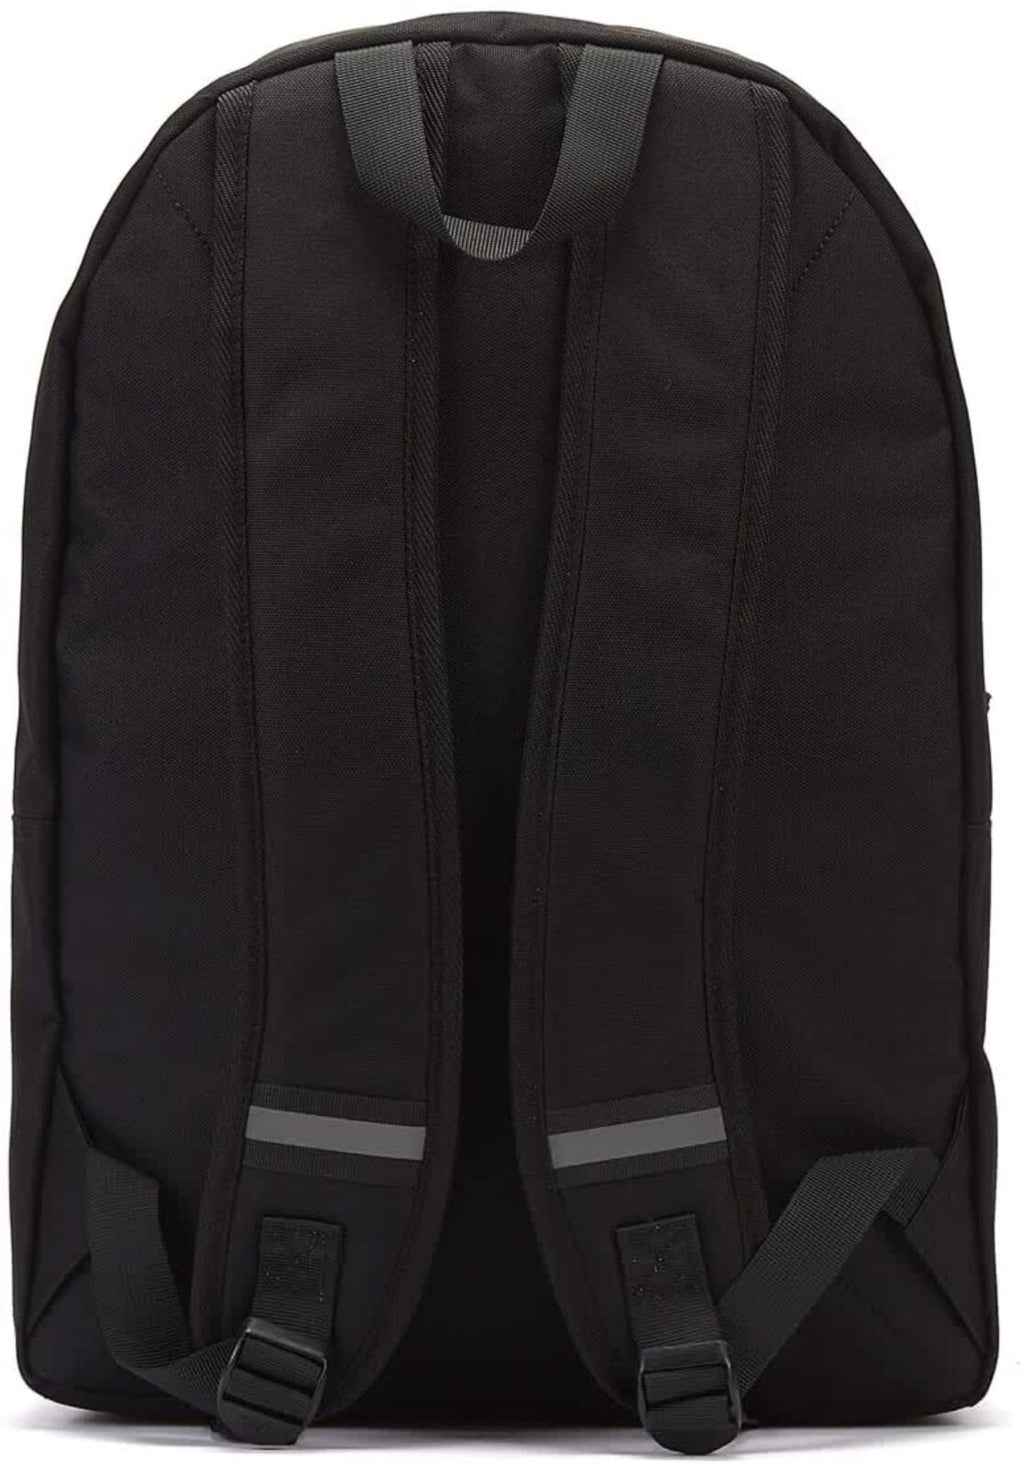 Fila Verda Backpack Bag SS20 Black